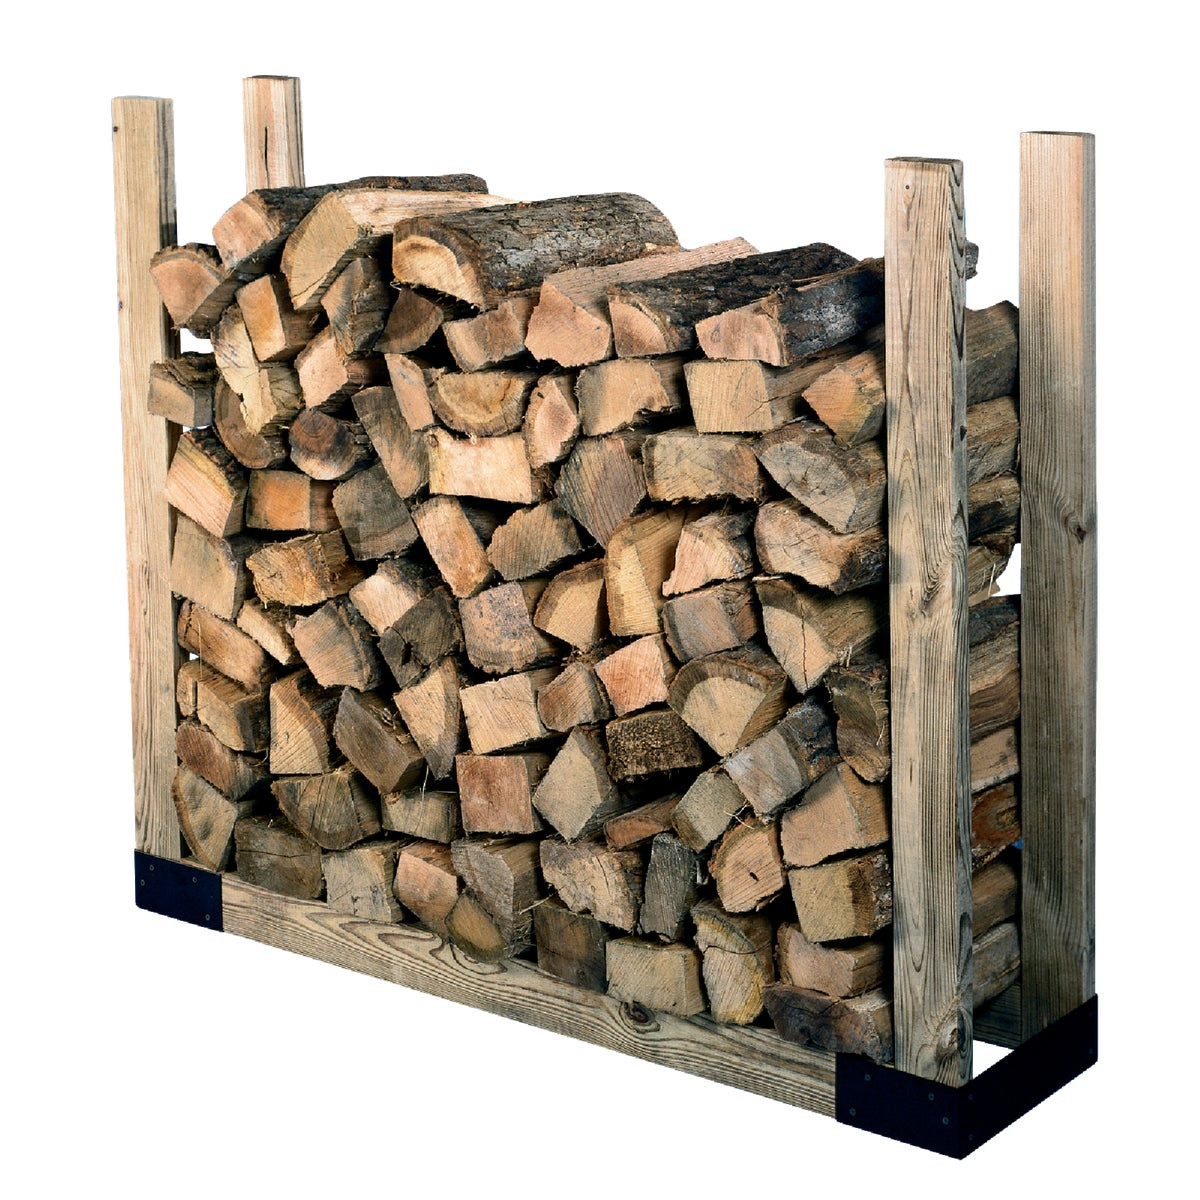 ADJ BRACKET LOG RACK